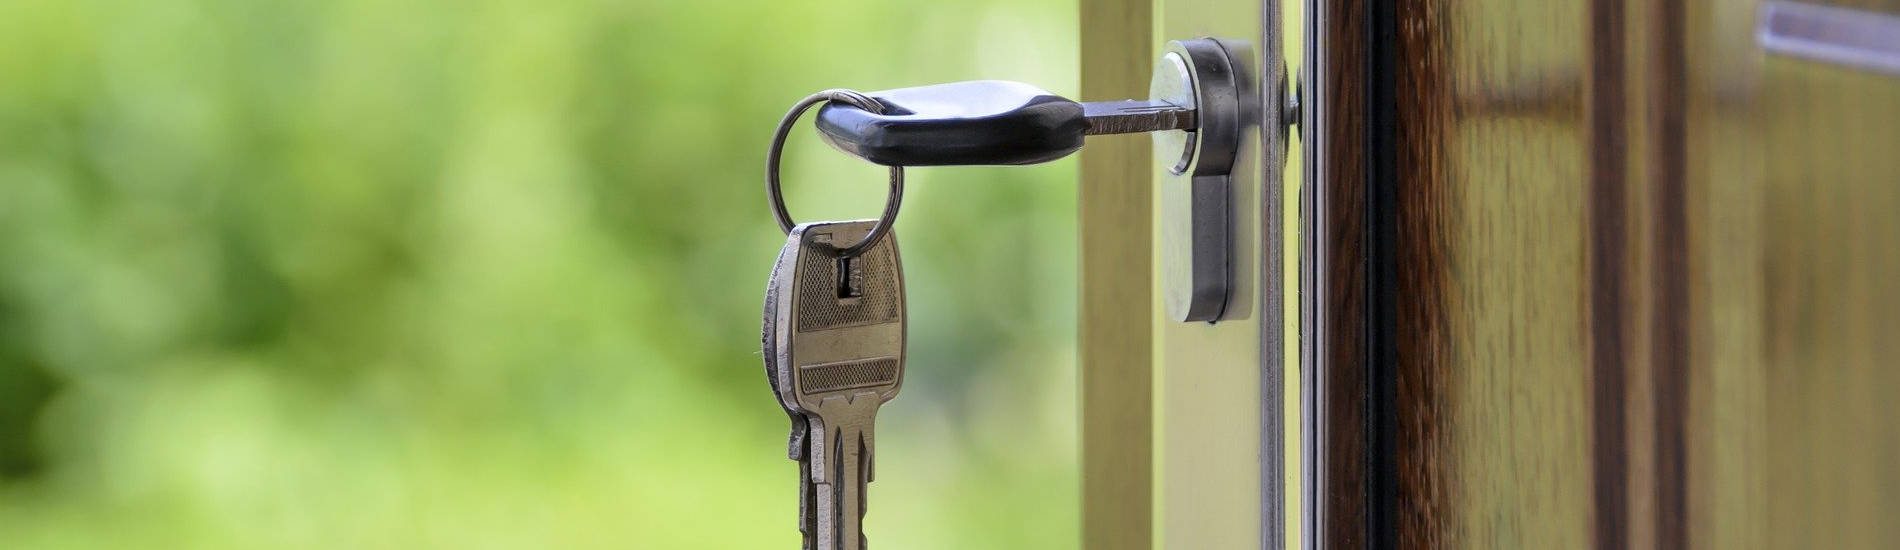 What Can Locksmiths Charge